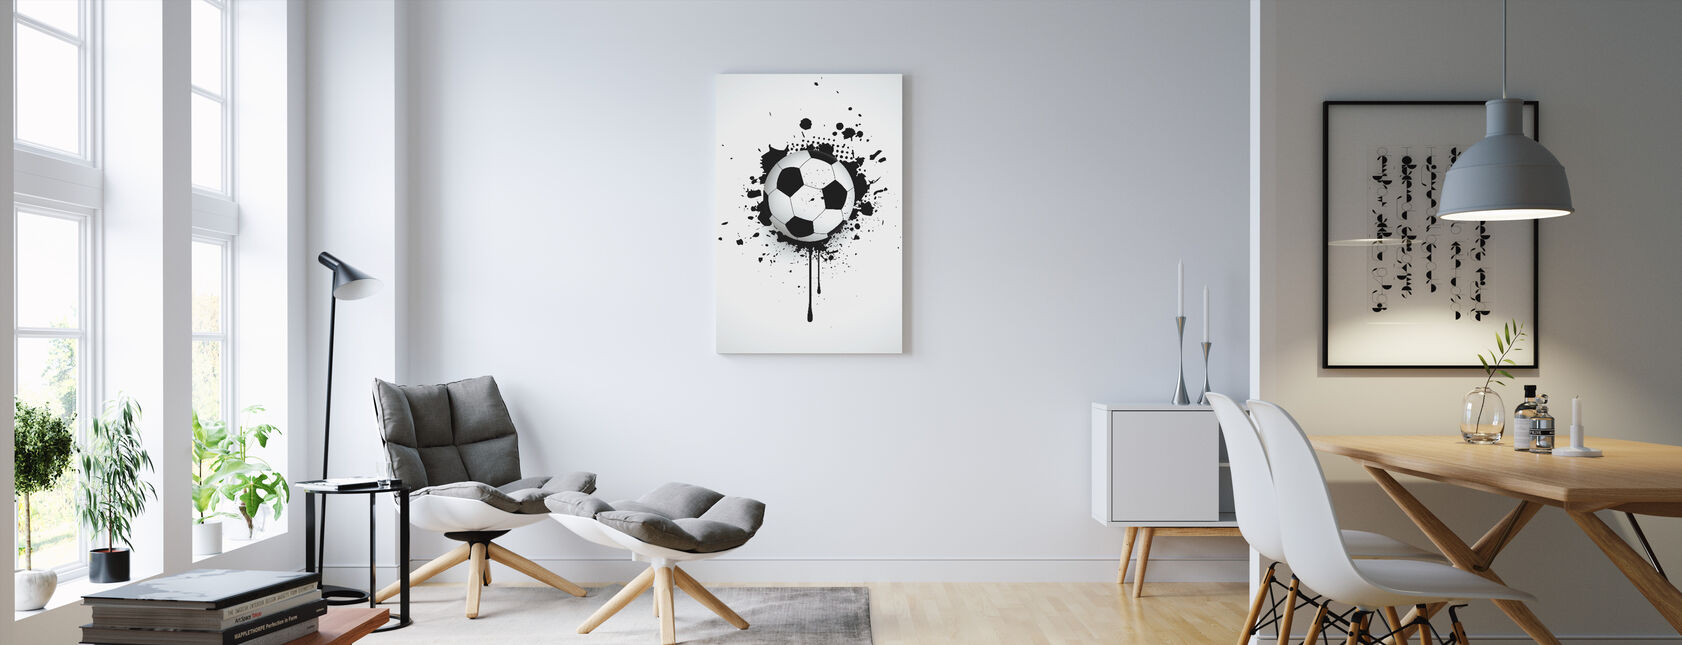 Ball Through Wall - Canvas print - Living Room